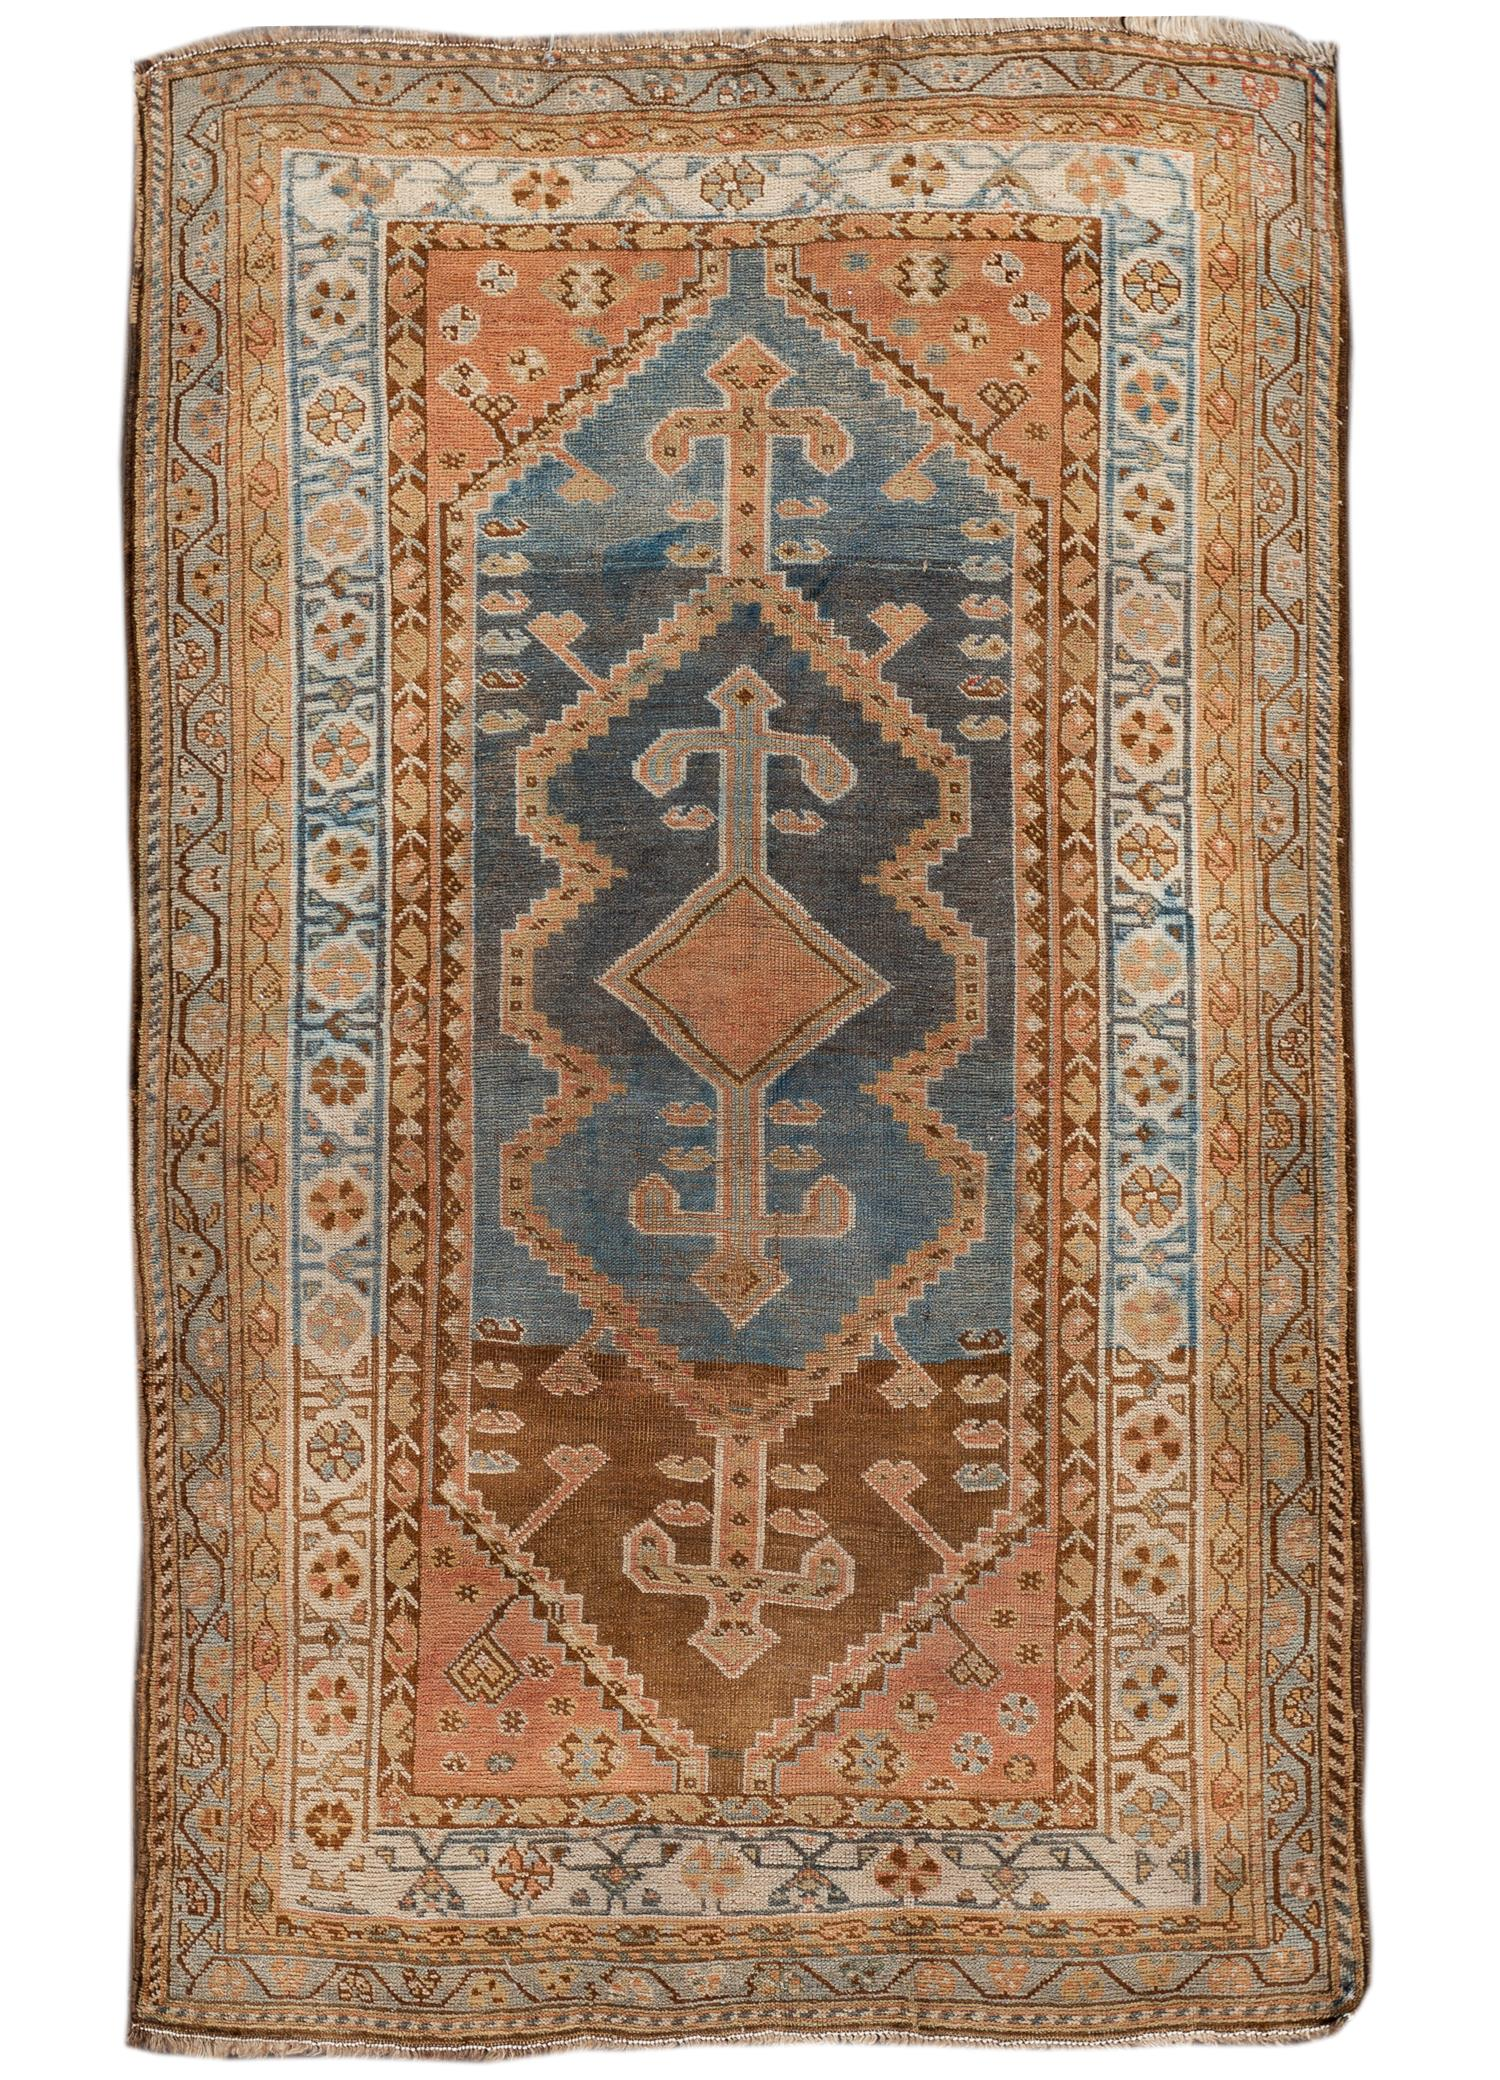 Antique Afshar Rug,  5' X 8'